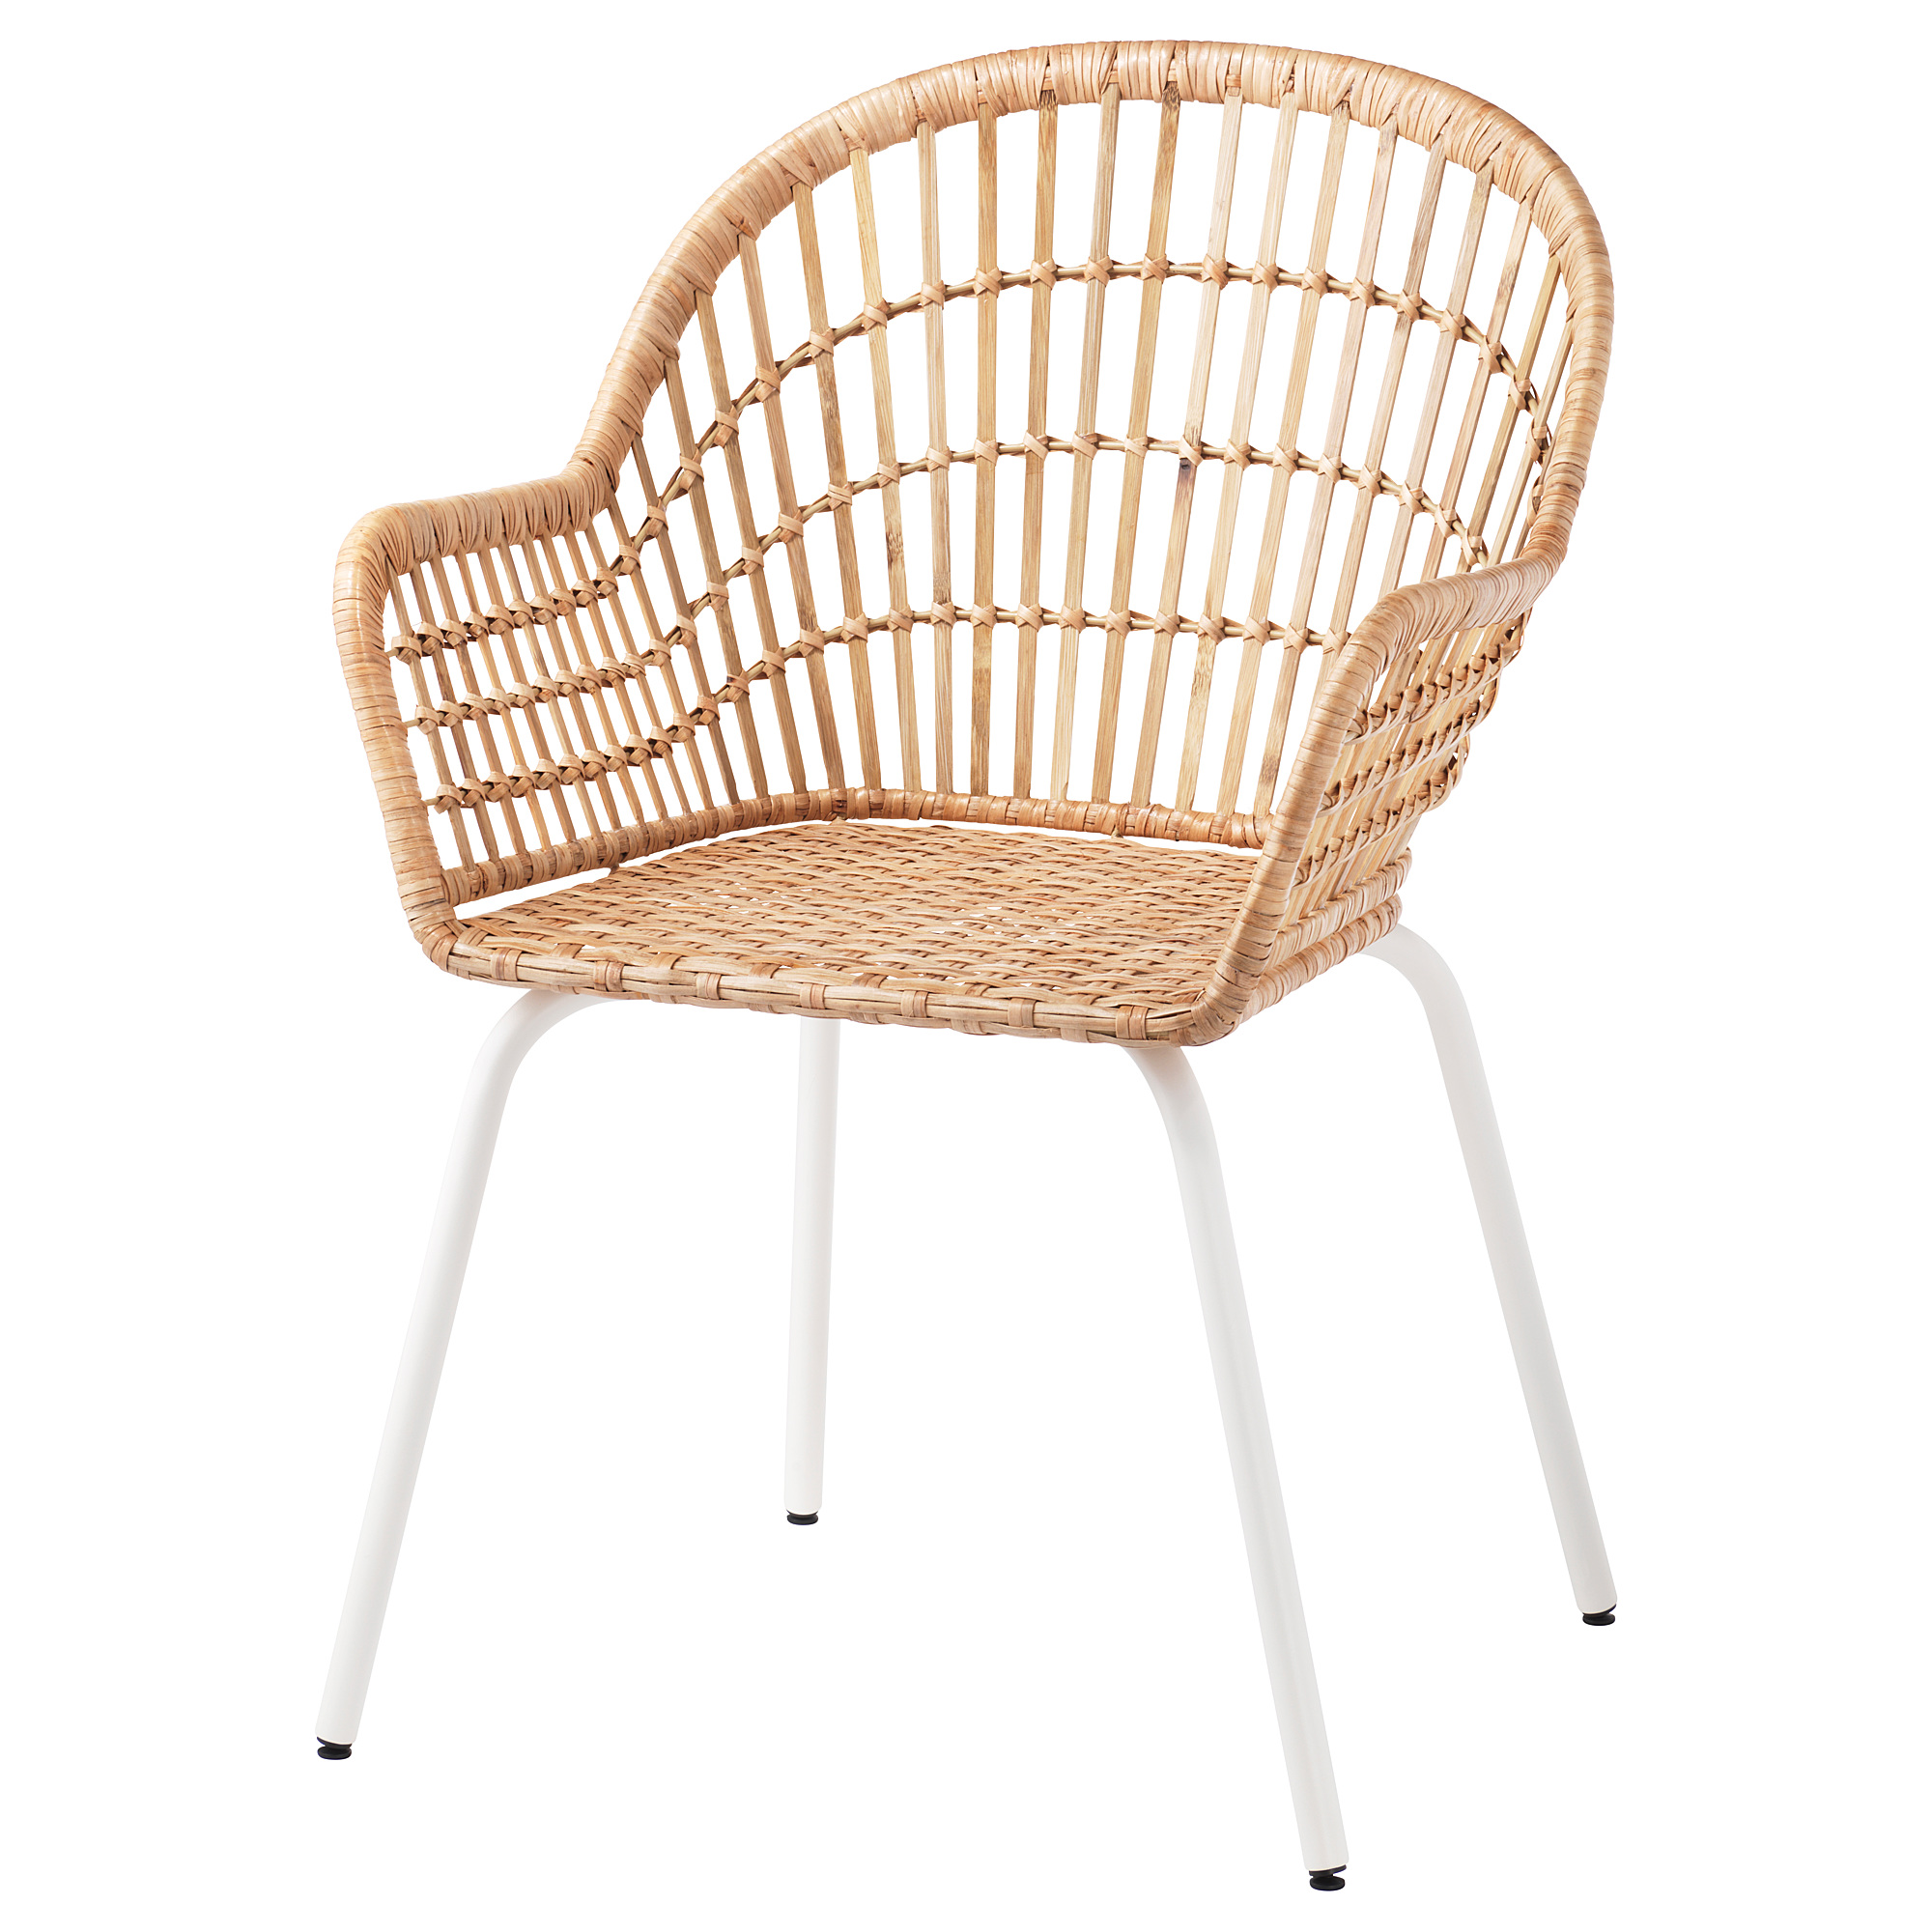 Nilsove Chair With Armrests Rattan White Ikea Hong Kong And Macau